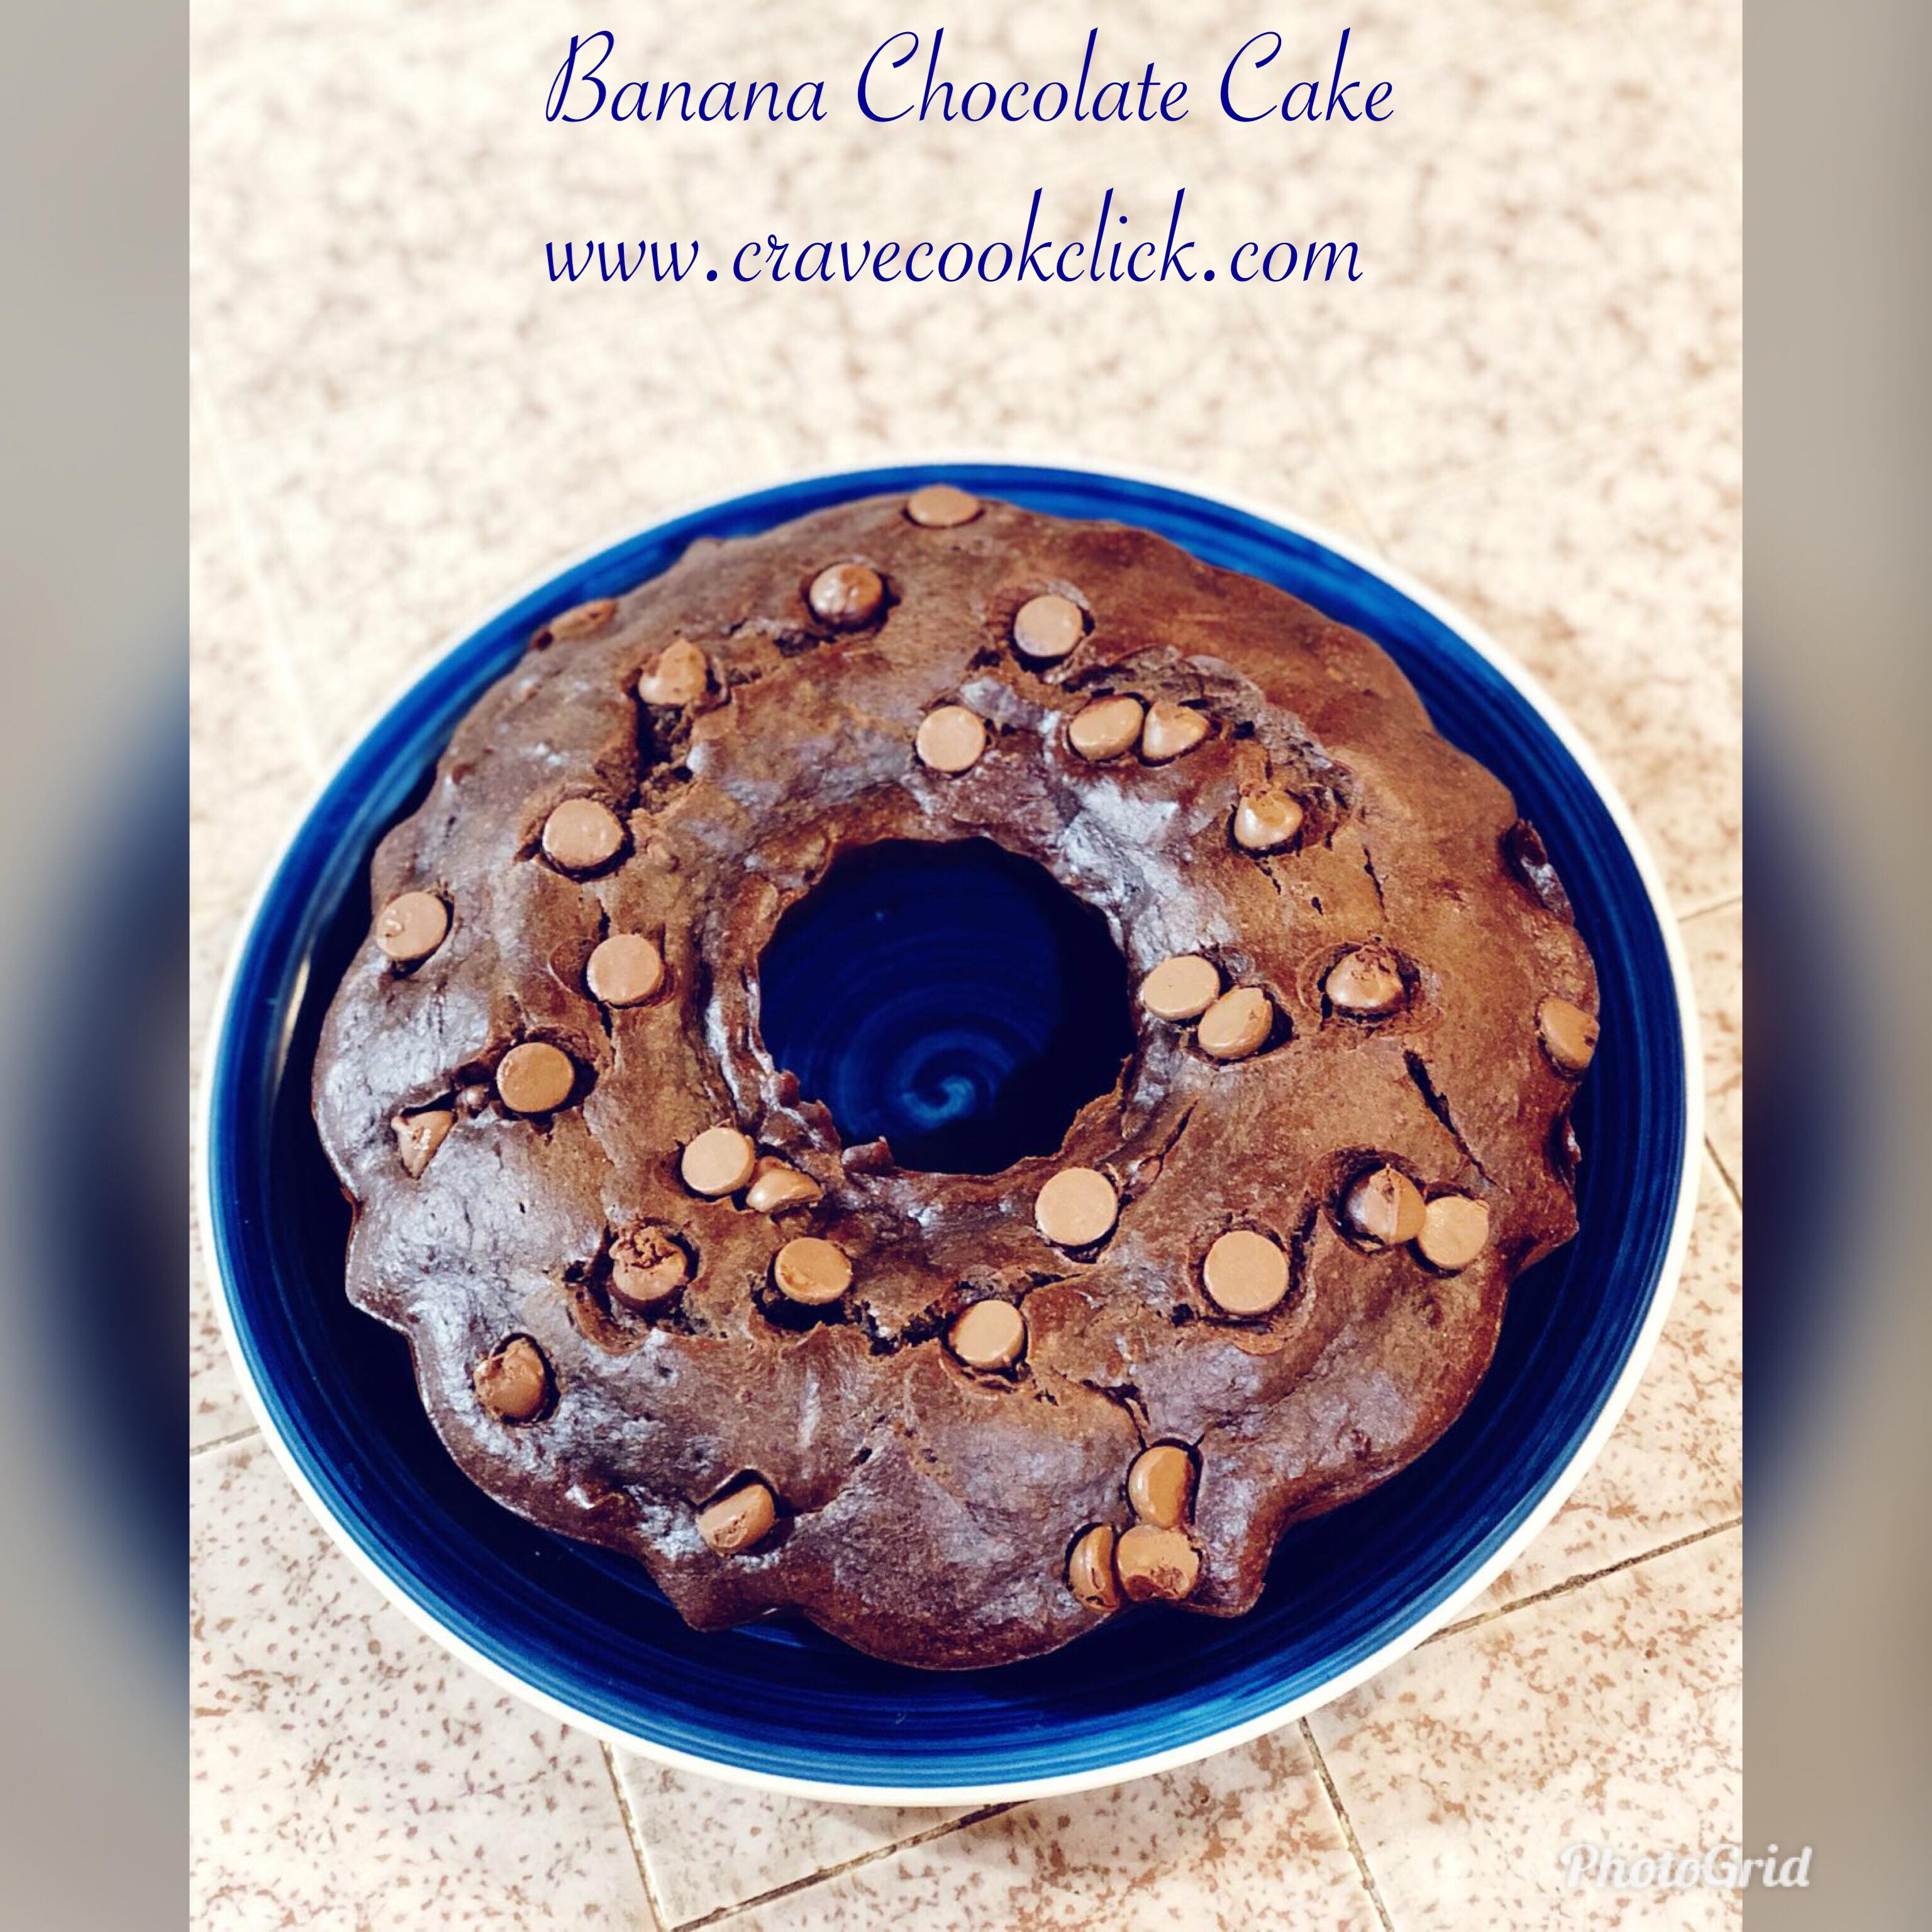 chocolate cake, banana chocolate cake, chocolate cake recipe, cake recipe, easy chocolate cake recipe, healthy chocolate cake, dessert recipe, eggless cake, butter less cake recipe